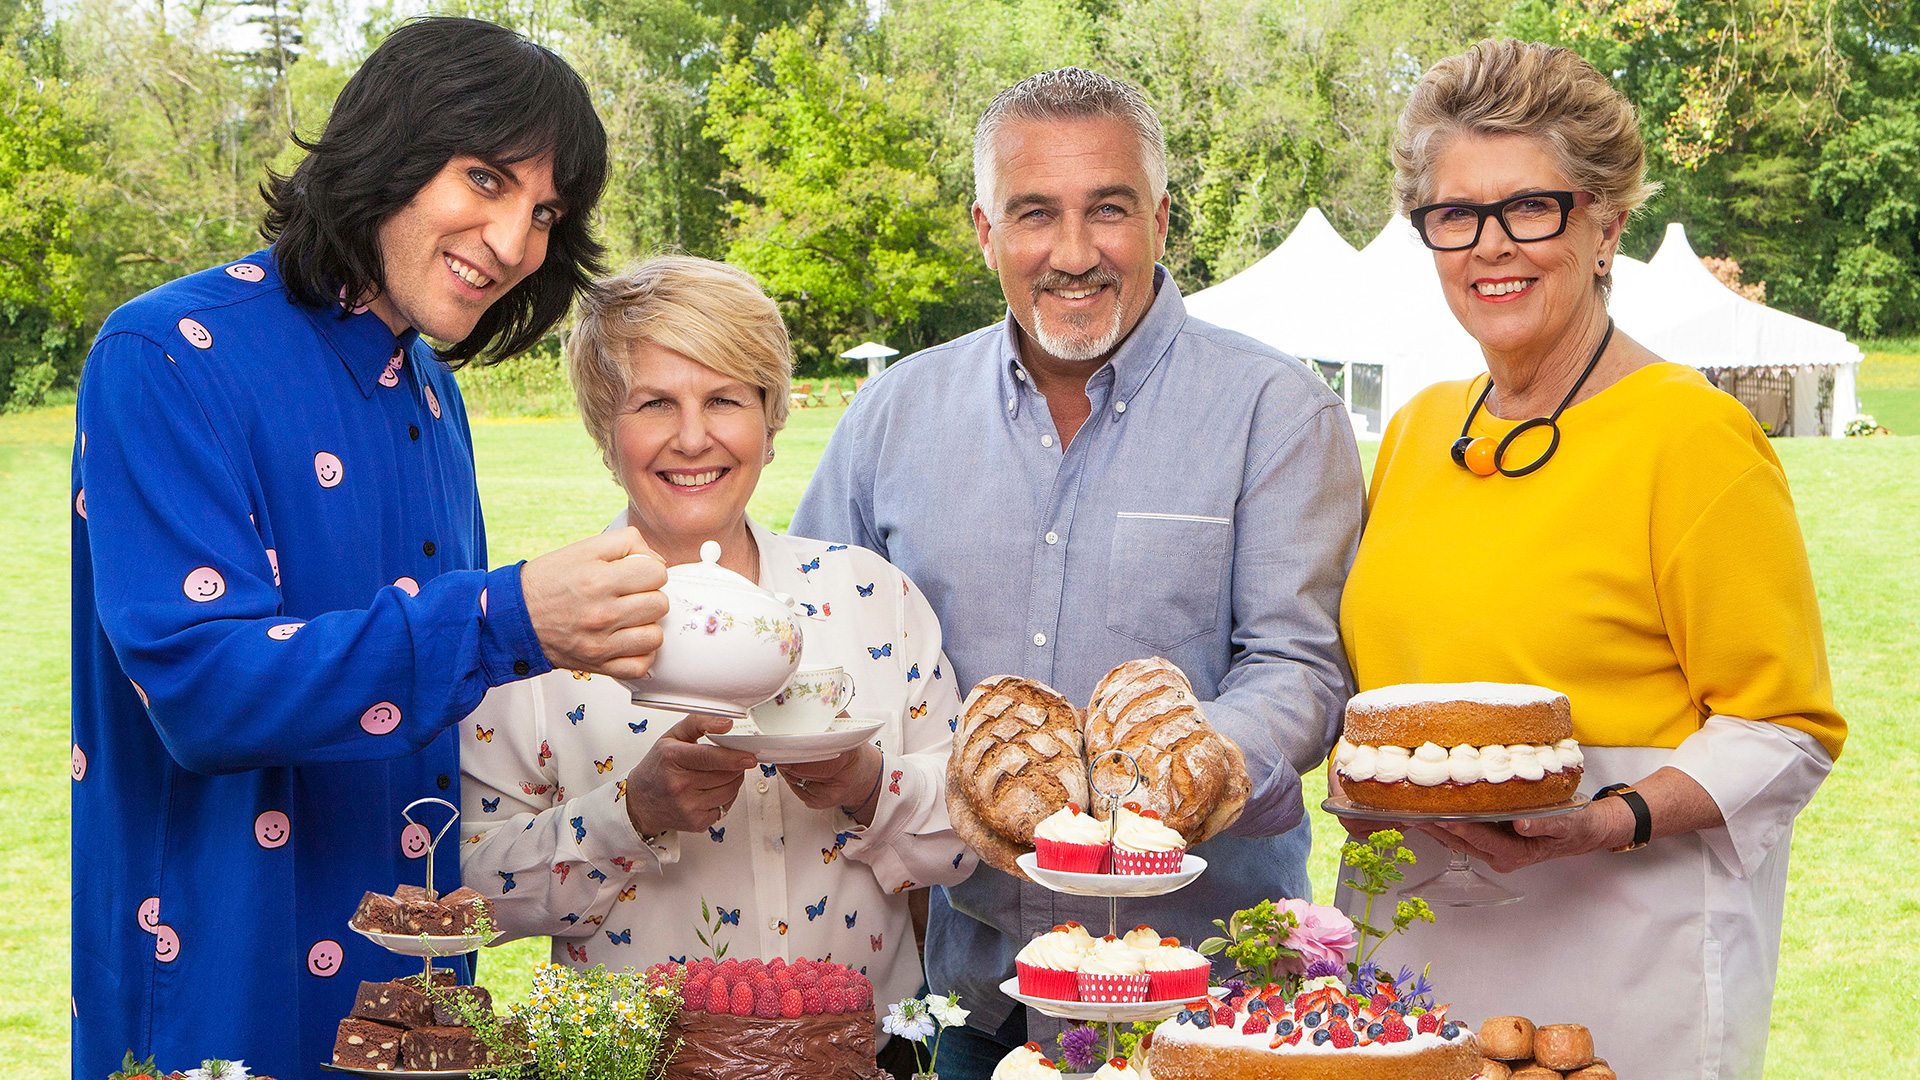 Review The Great British Bake Off Series 8 Episode 1